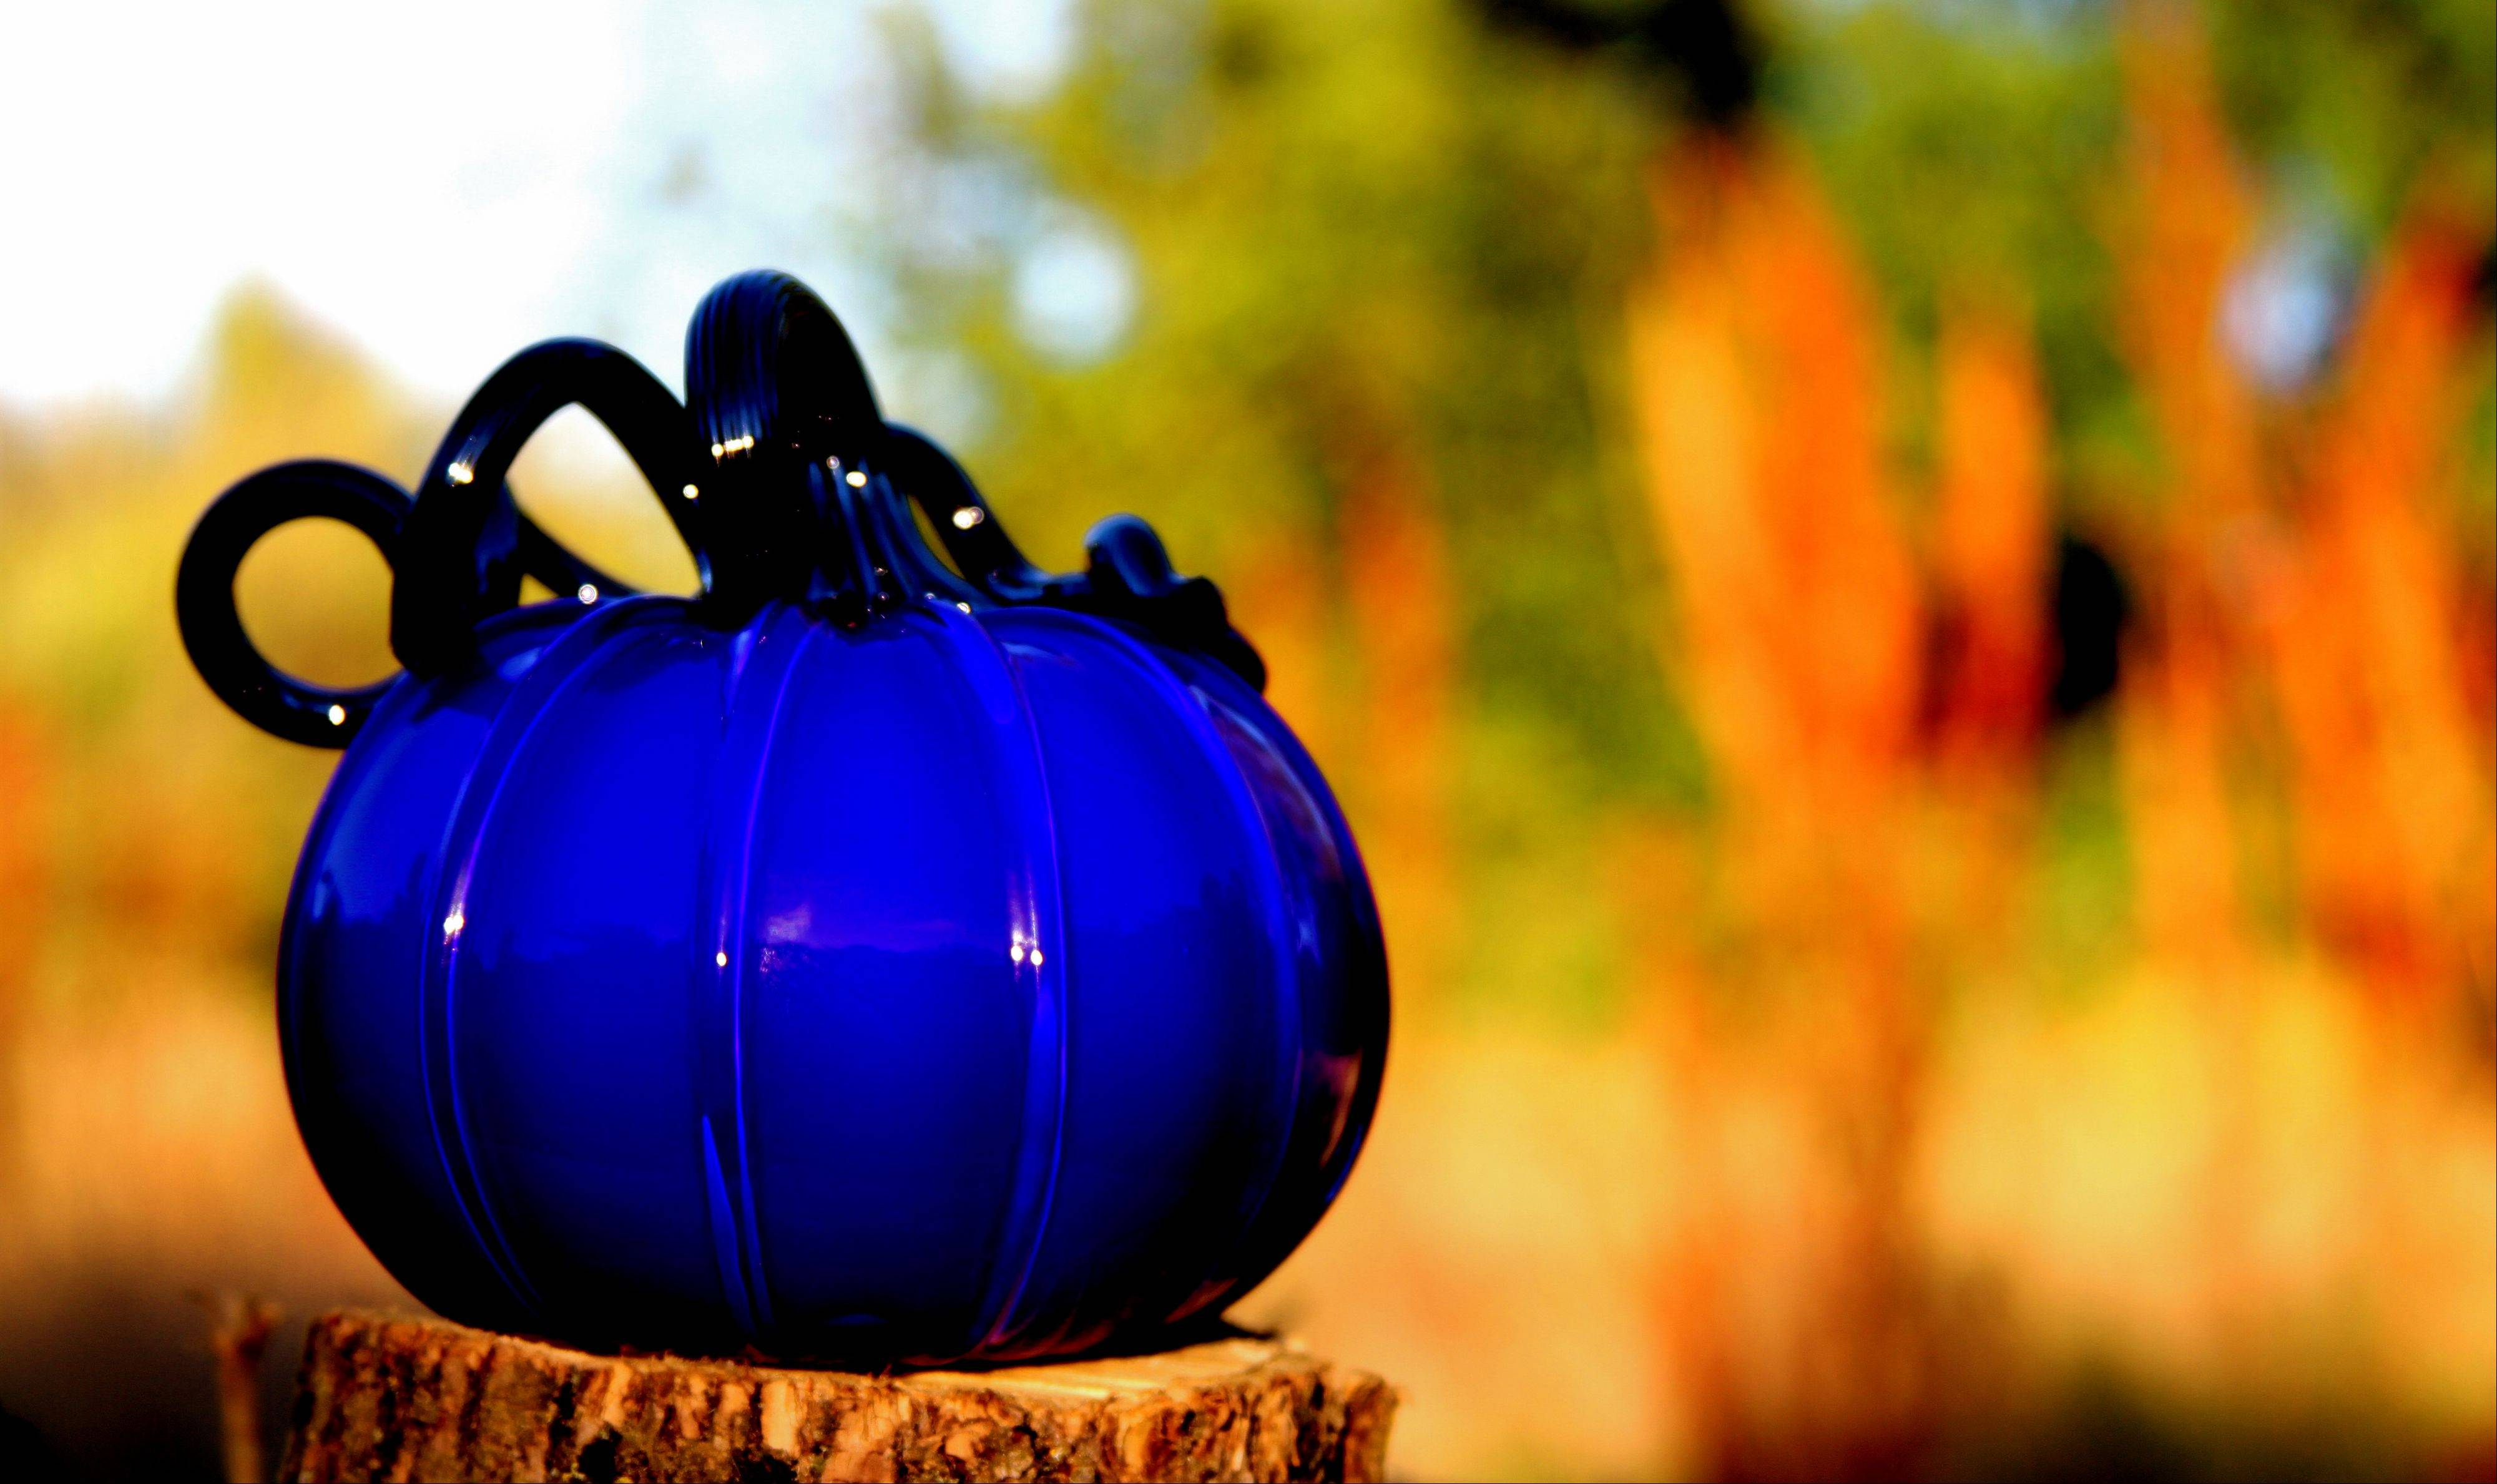 Glass pumpkins will sparkle from Oct. 16-20 at the Morton Arboretum in Lisle.